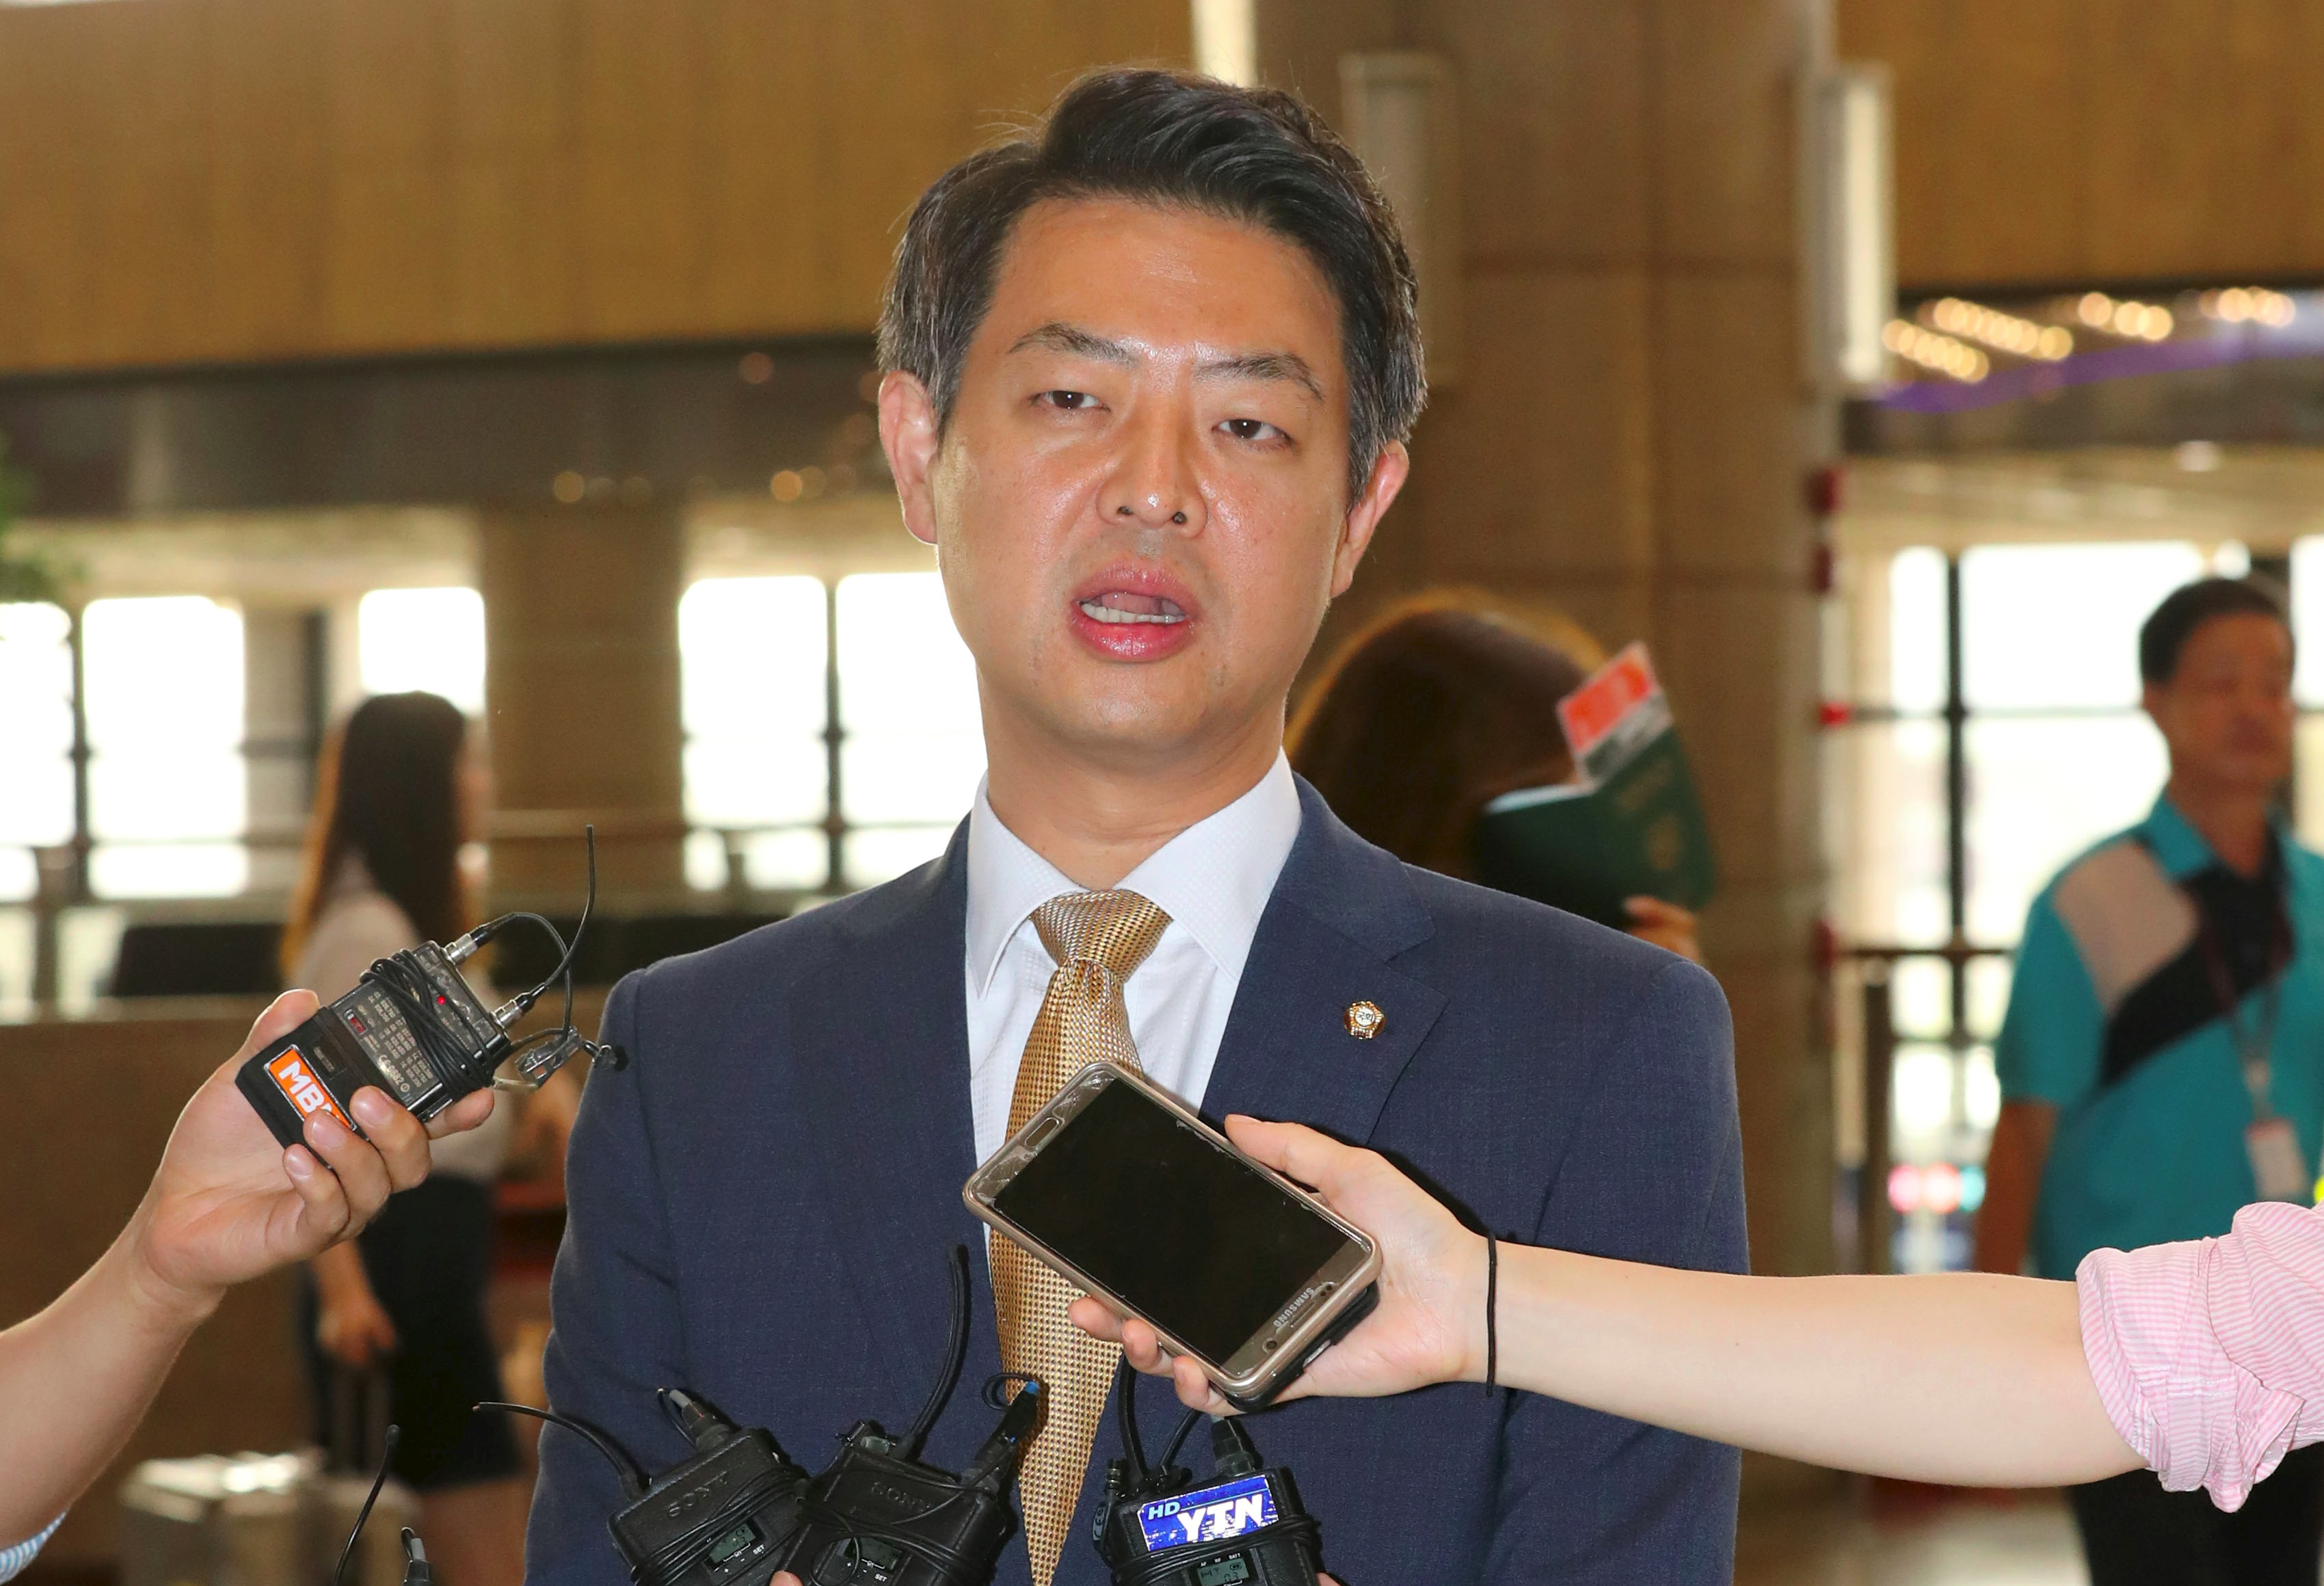 Kim Young-Ho, a lawmaker from South Korea's main opposition Minjoo Party, speaks to the media before departing for China at Gimpo airport in Seoul on August 8, 2016. South Korean opposition lawmakers defied President Park Geun-Hye and left for China on August 8 to discuss the deployment of a US anti-missile system that has opened a damaging rift between Seoul and Beijing. / AFP PHOTO / YONHAP / YONHAP / REPUBLIC OF KOREA OUT  NO ARCHIVES  RESTRICTED TO SUBSCRIPTION USE